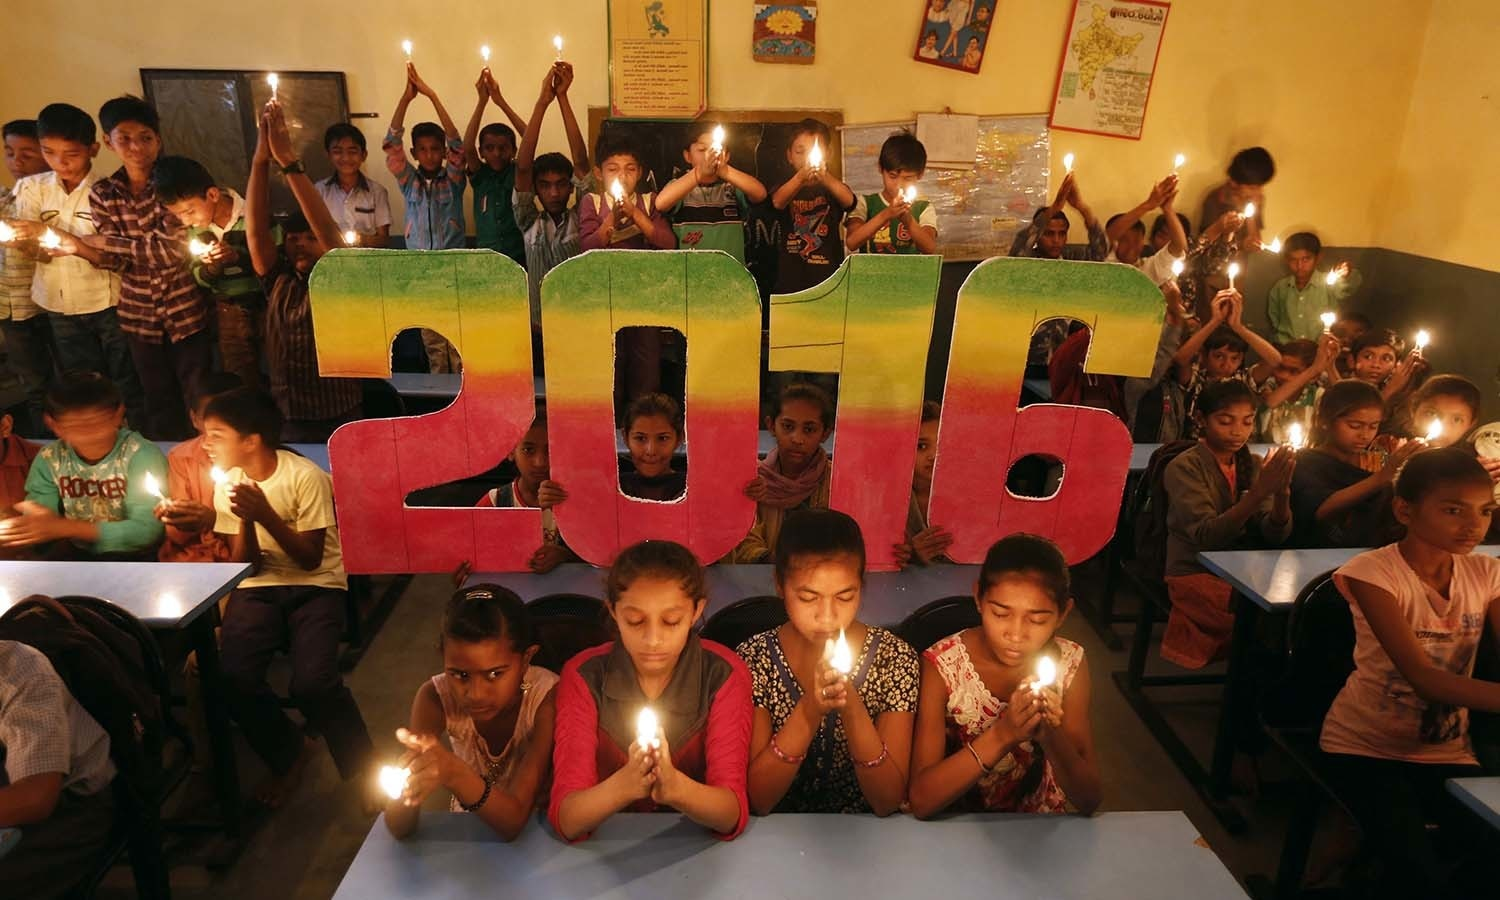 School students offer prayers for the world peace in the upcoming year of 2016 in Ahmedabad, India, December 31, 2015. REUTERS/Amit Dave